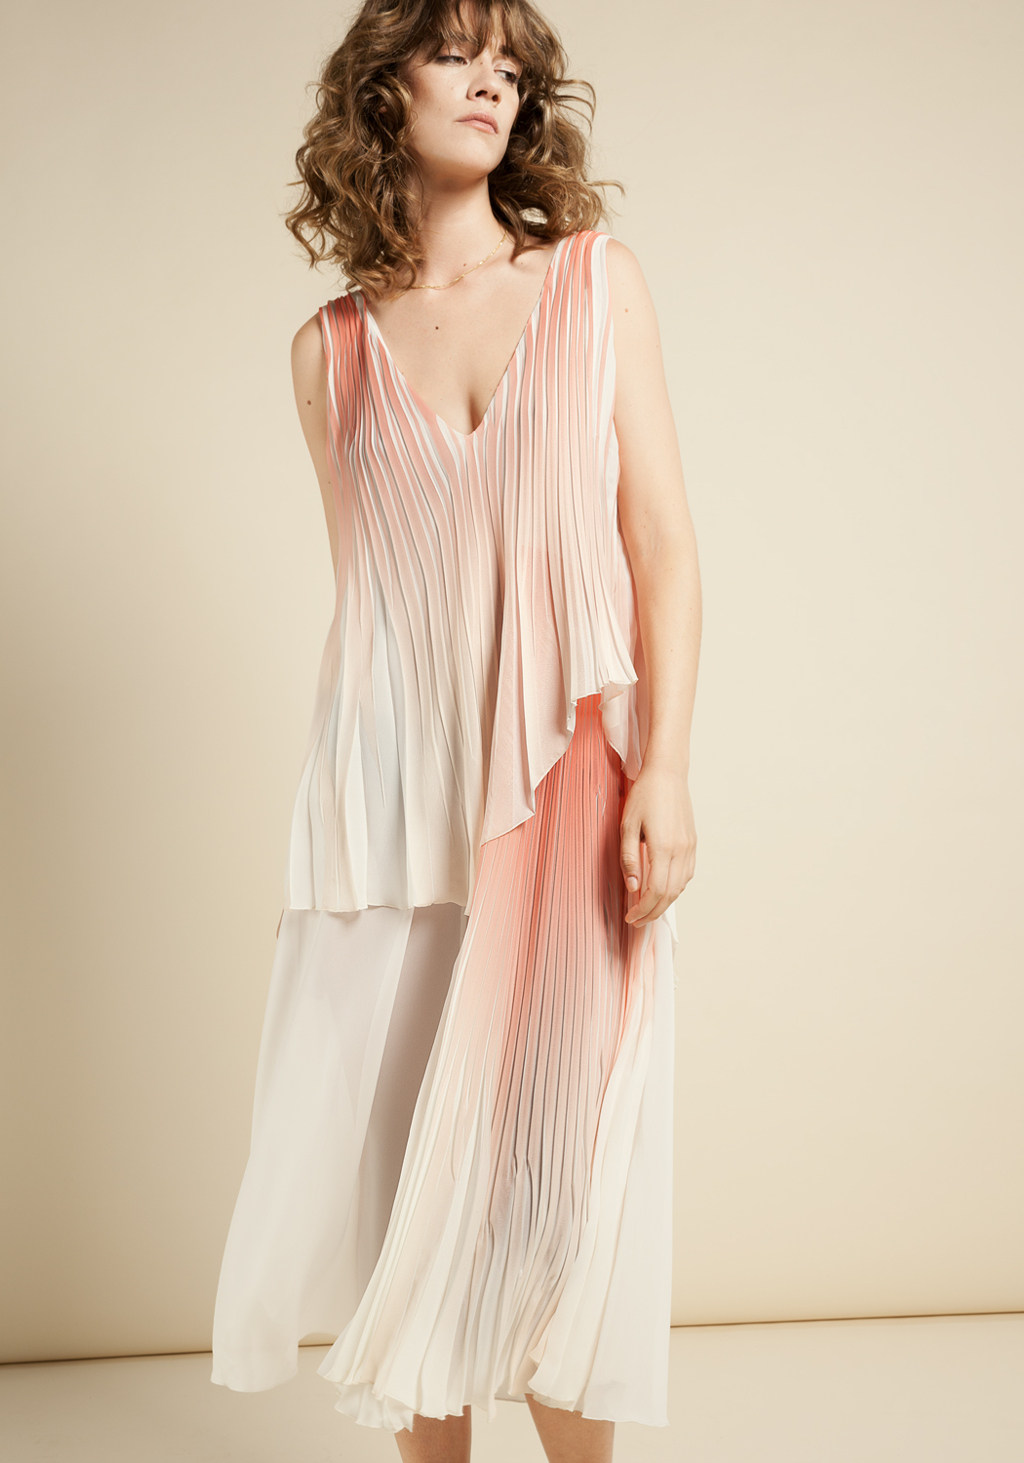 Coral & pink plited dress and white chiffon pannel